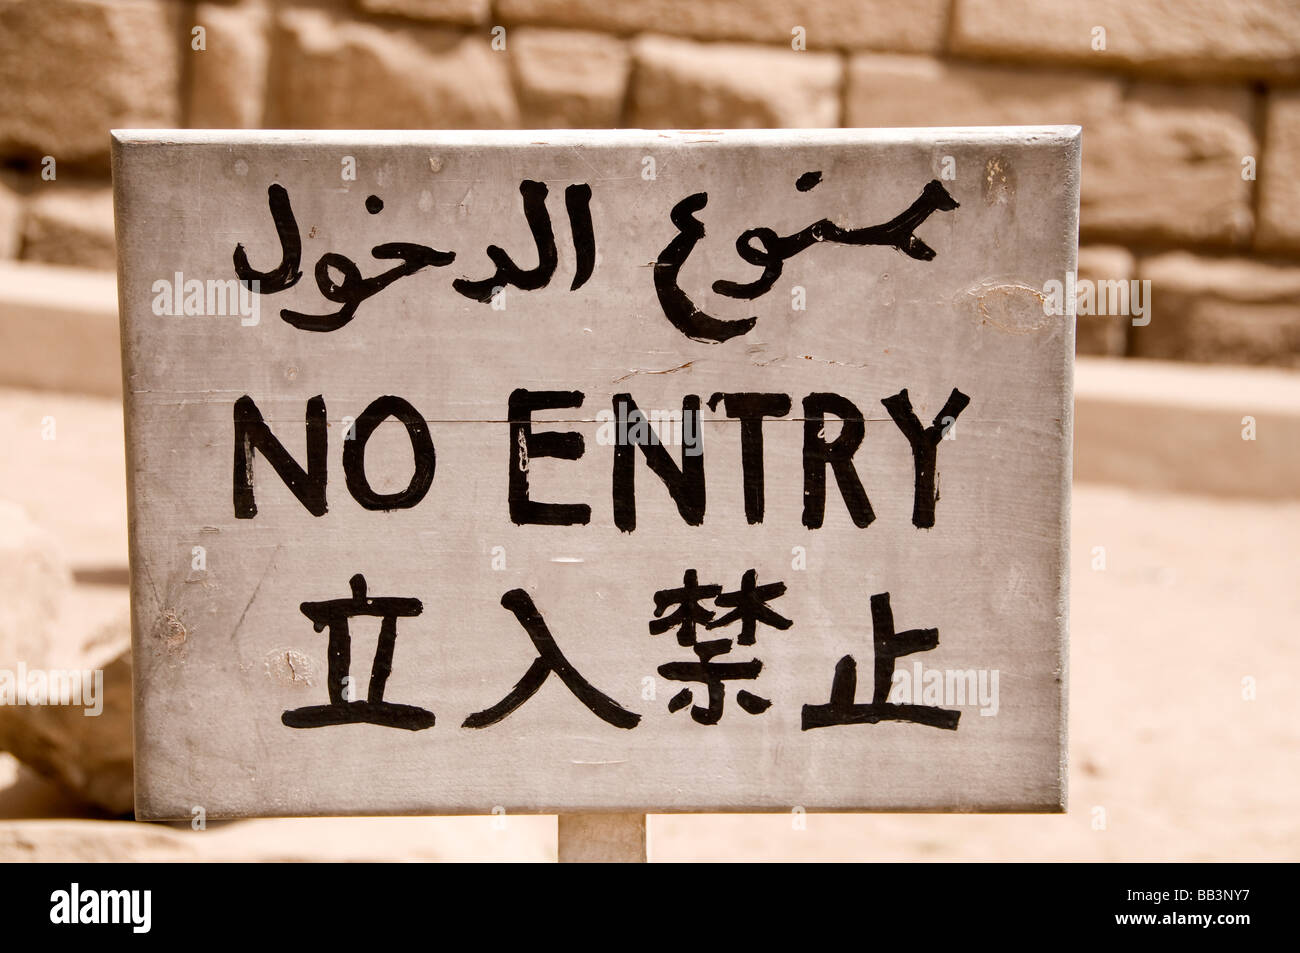 Luxor Temple Egypt  was the house of Amon Ra no entry Stock Photo